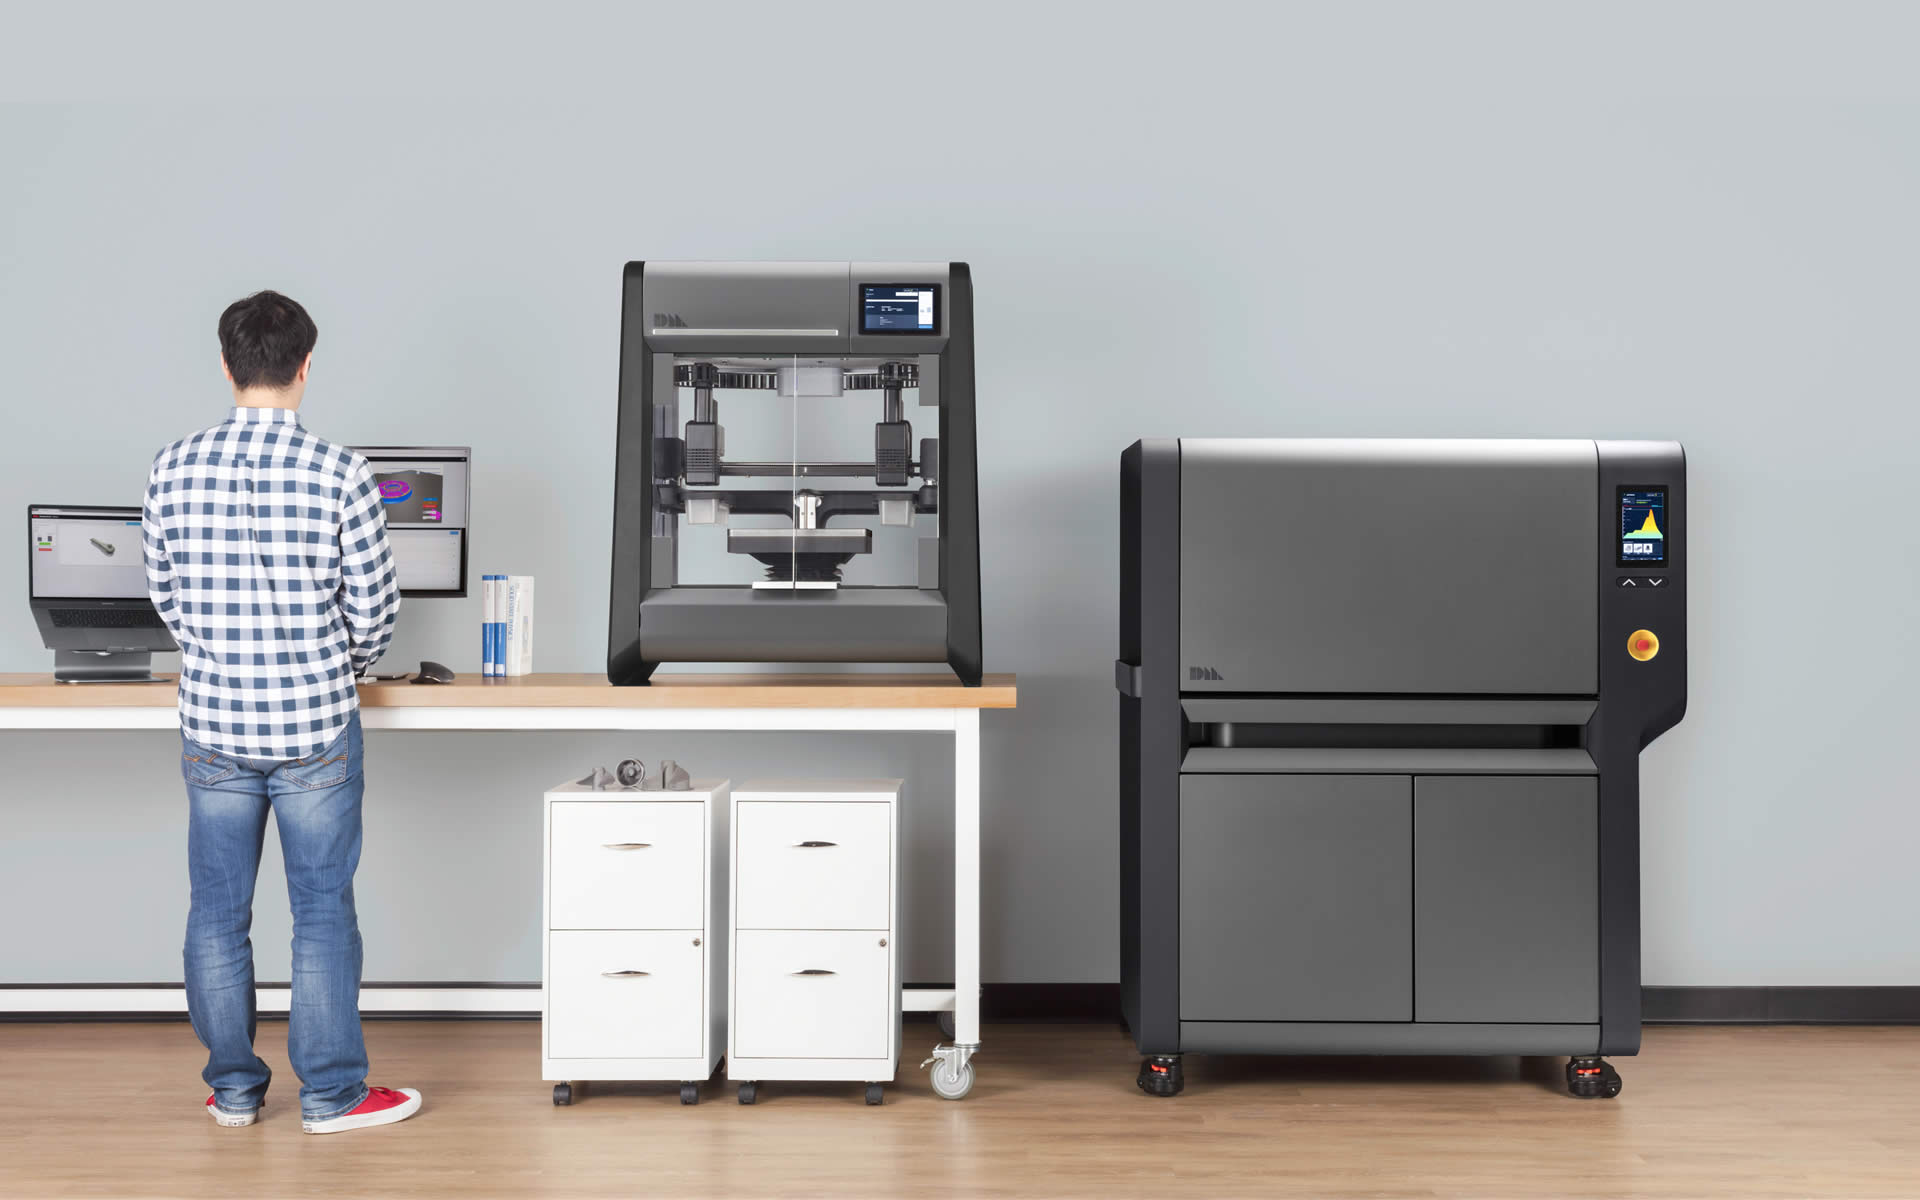 Design Metal Studio System is the world's first affordable, office-friendly metal 3D printing system.